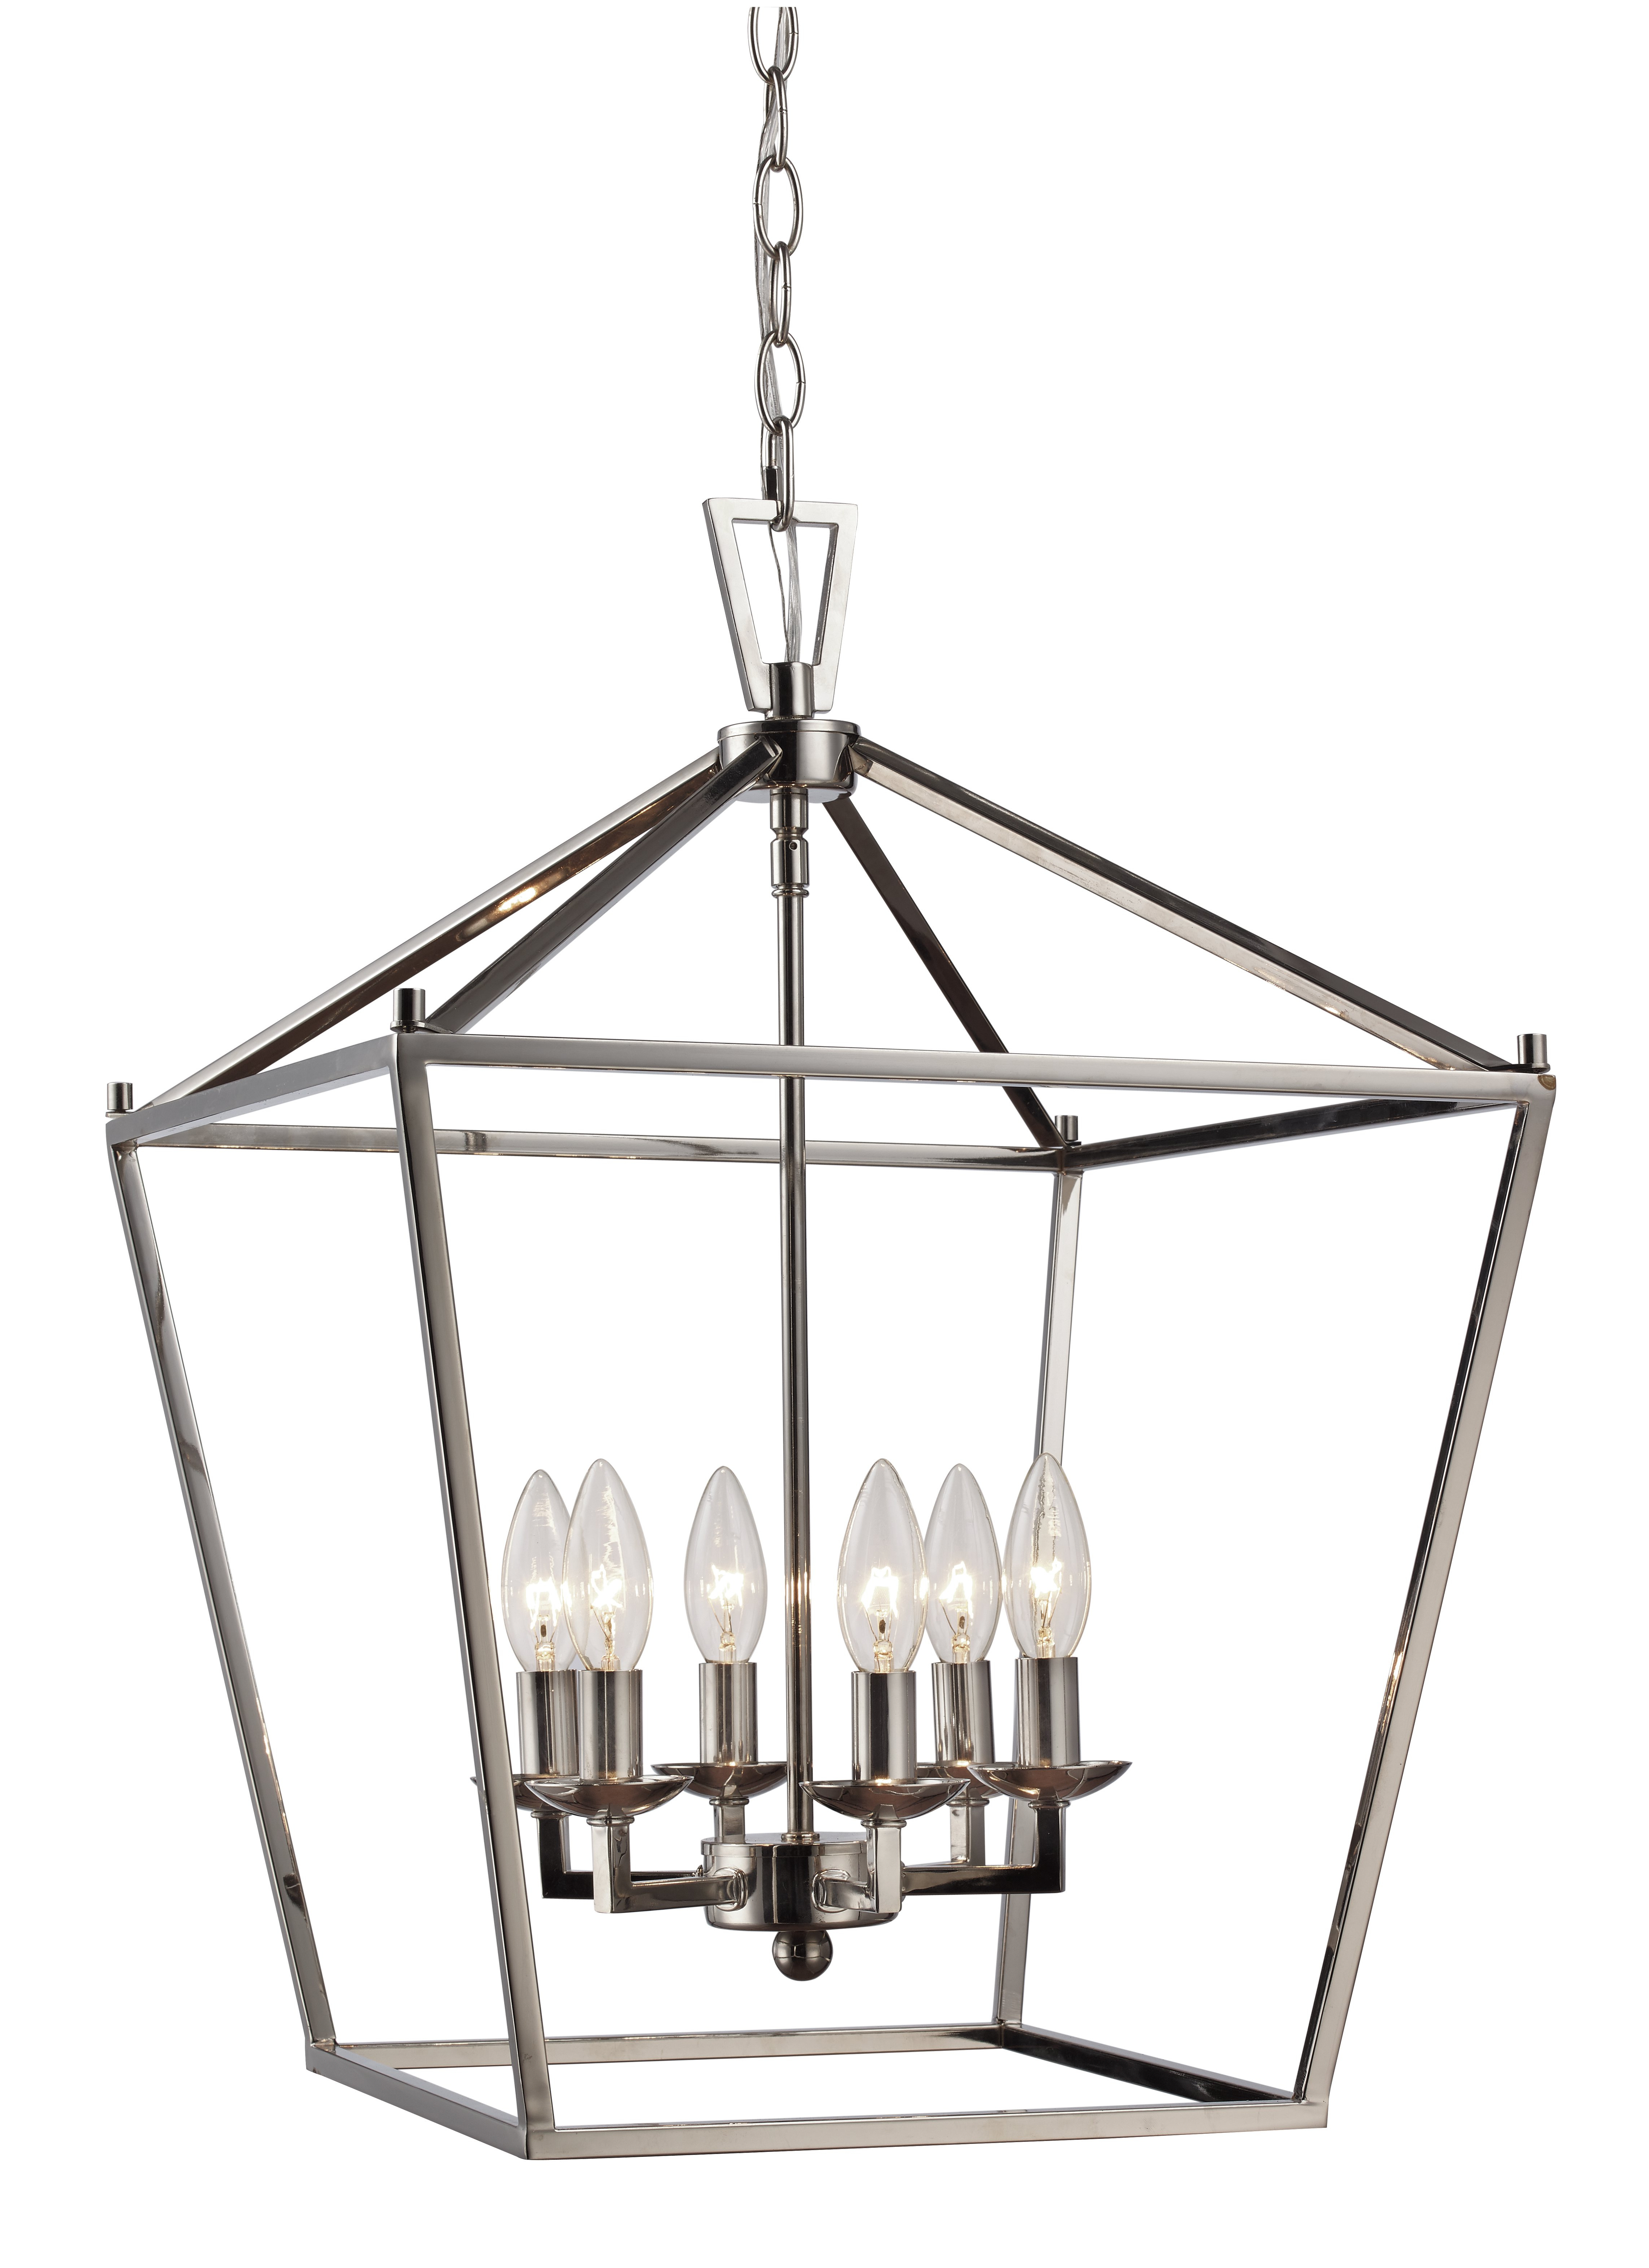 Widely Used Carmen 6 Light Lantern Geometric Pendants For Carmen 6 Light Lantern Geometric Pendant (View 4 of 20)